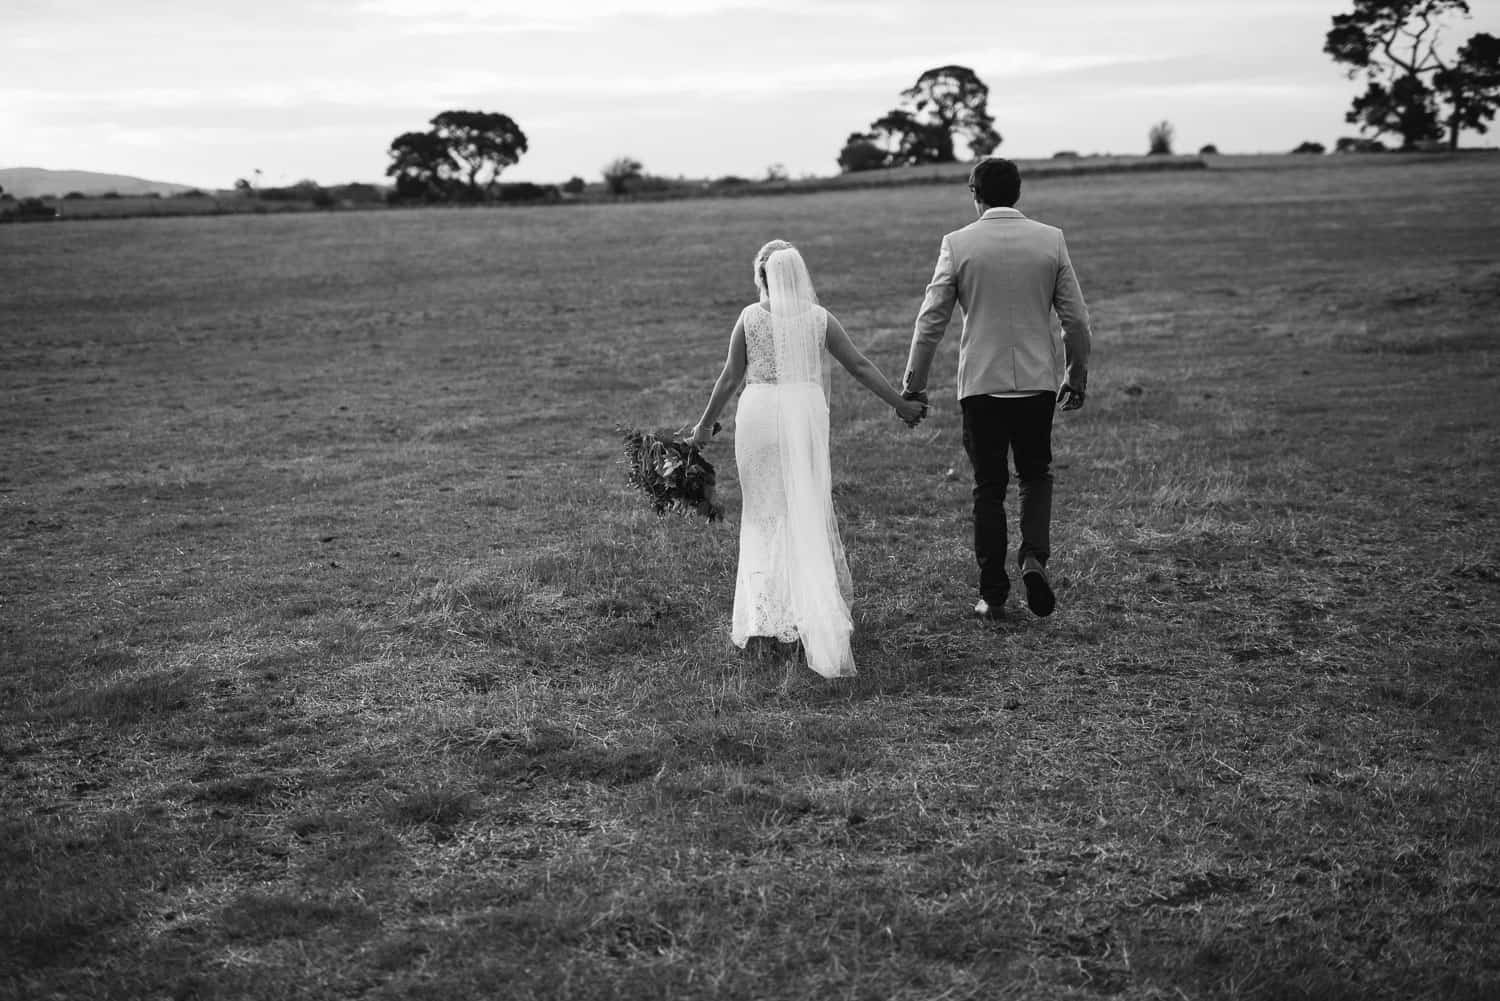 Wedding photo at sunset near Colac